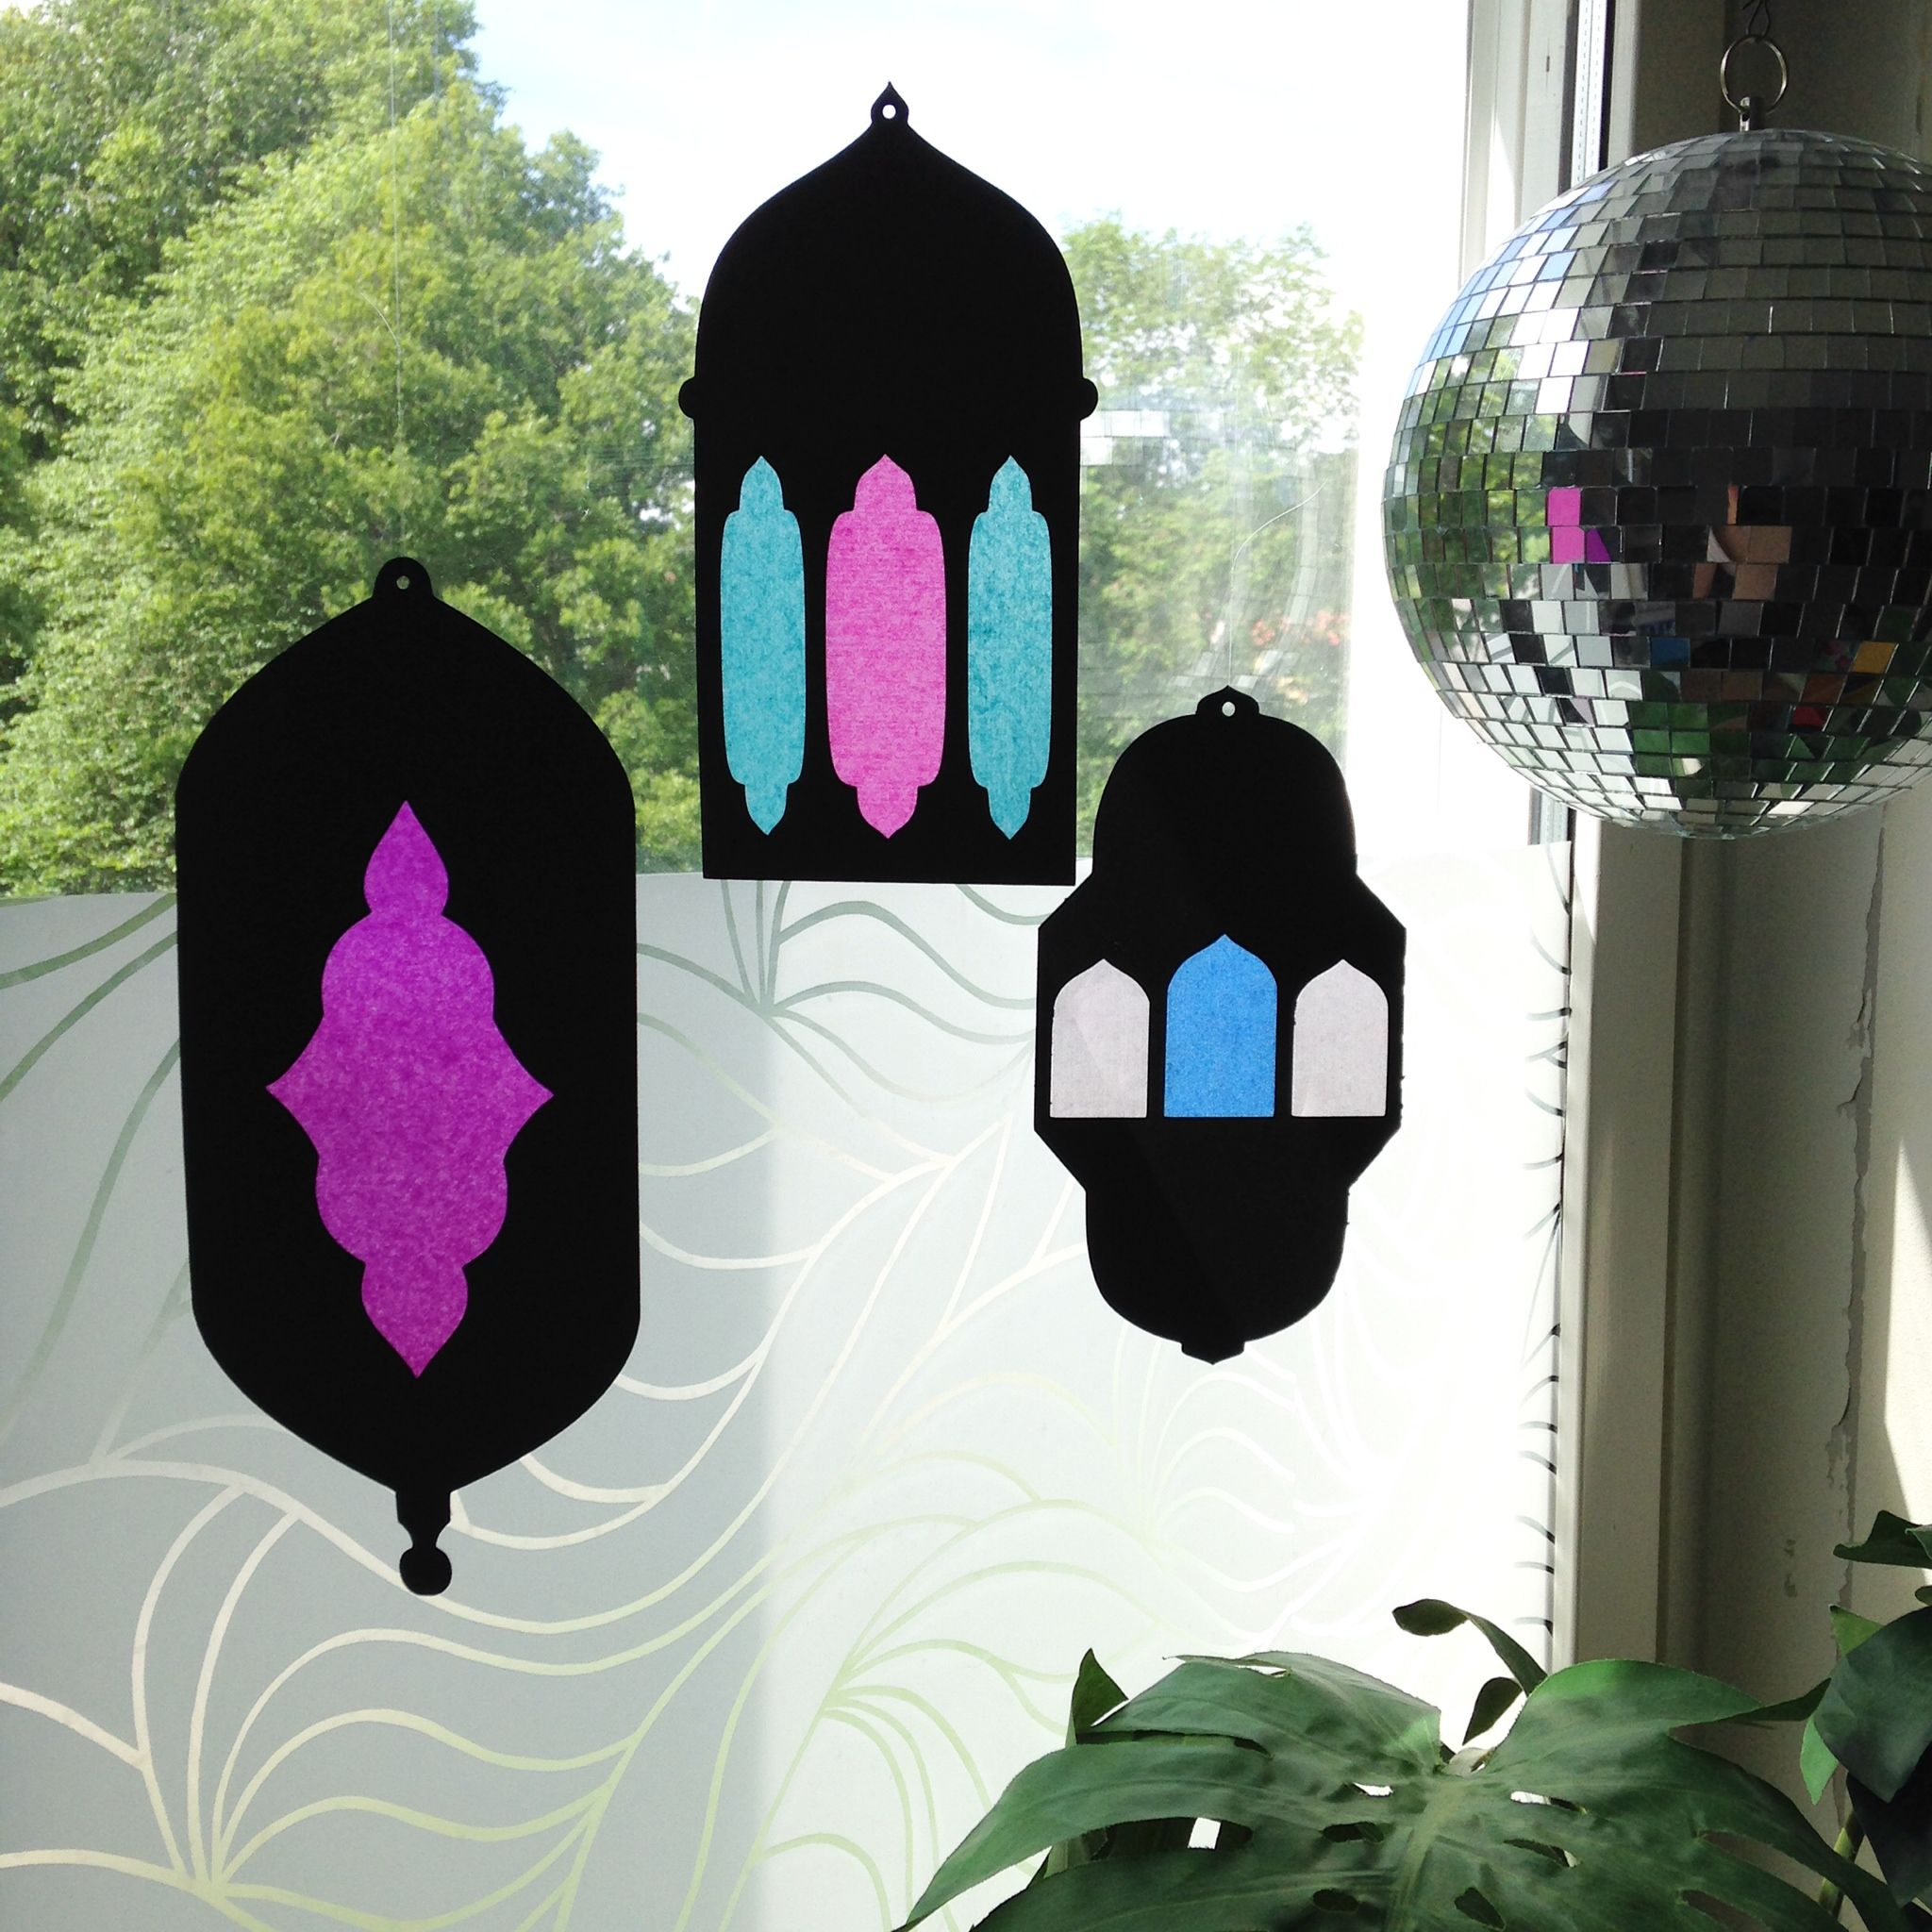 Salaam Aleikum I M So Happy To Share This Template With You For Ramadan Crafts With Or Without